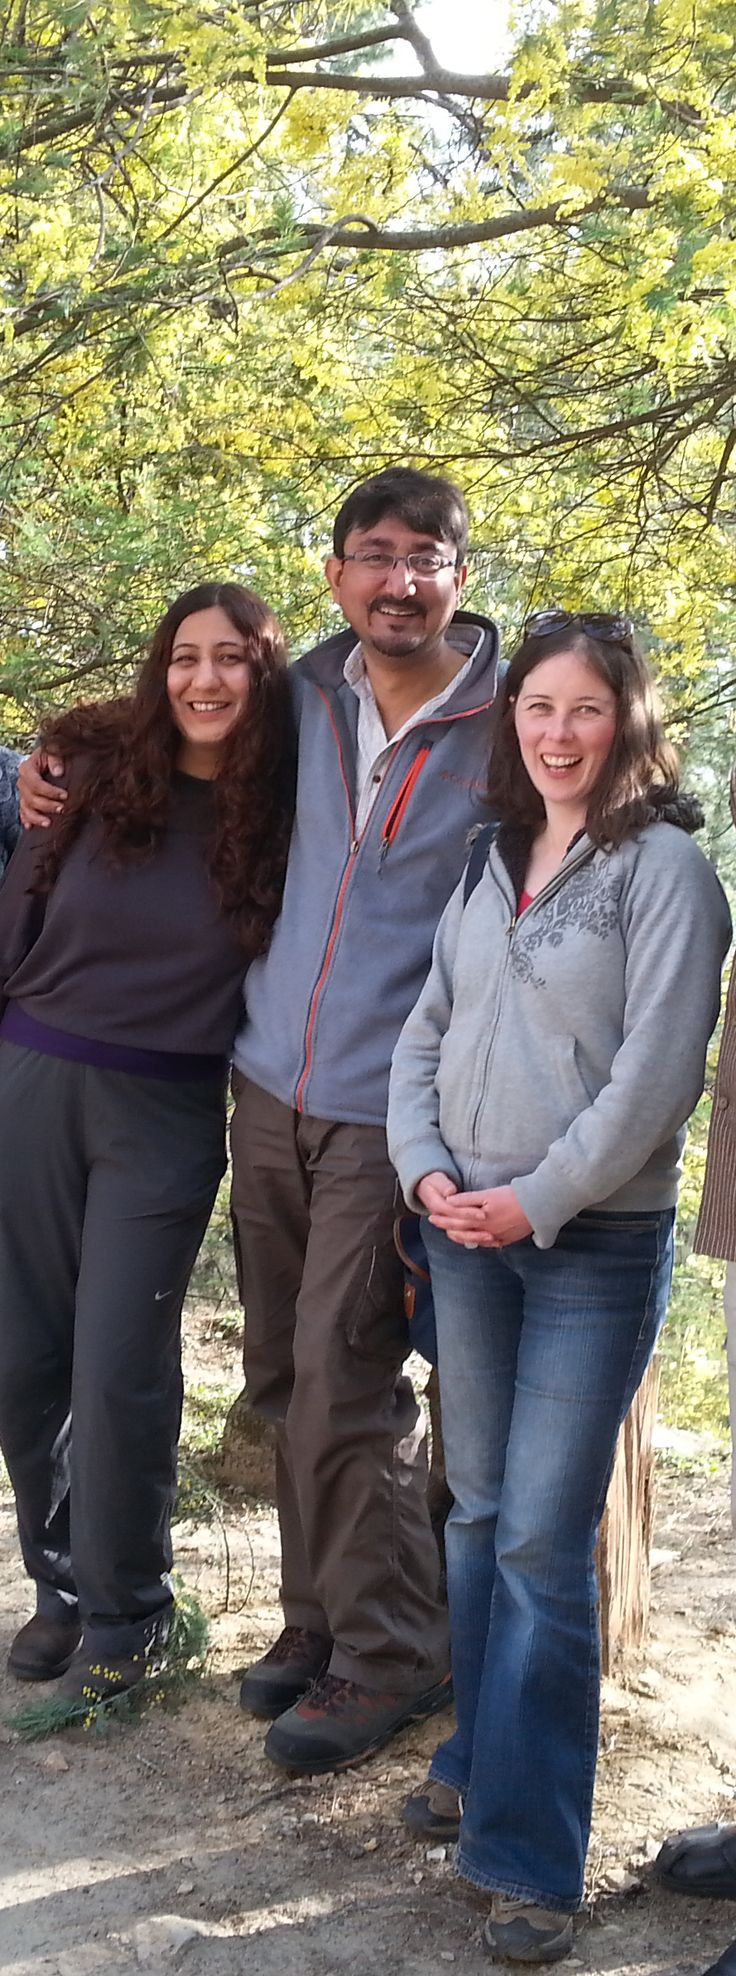 Springtime in the Himalayas, 2014. Keya and Jagat Rathore (left and middle) met Satya Gillen, host of the Hazelnut Interviews, on a train to Delhi - plenty of time to get to know each other.